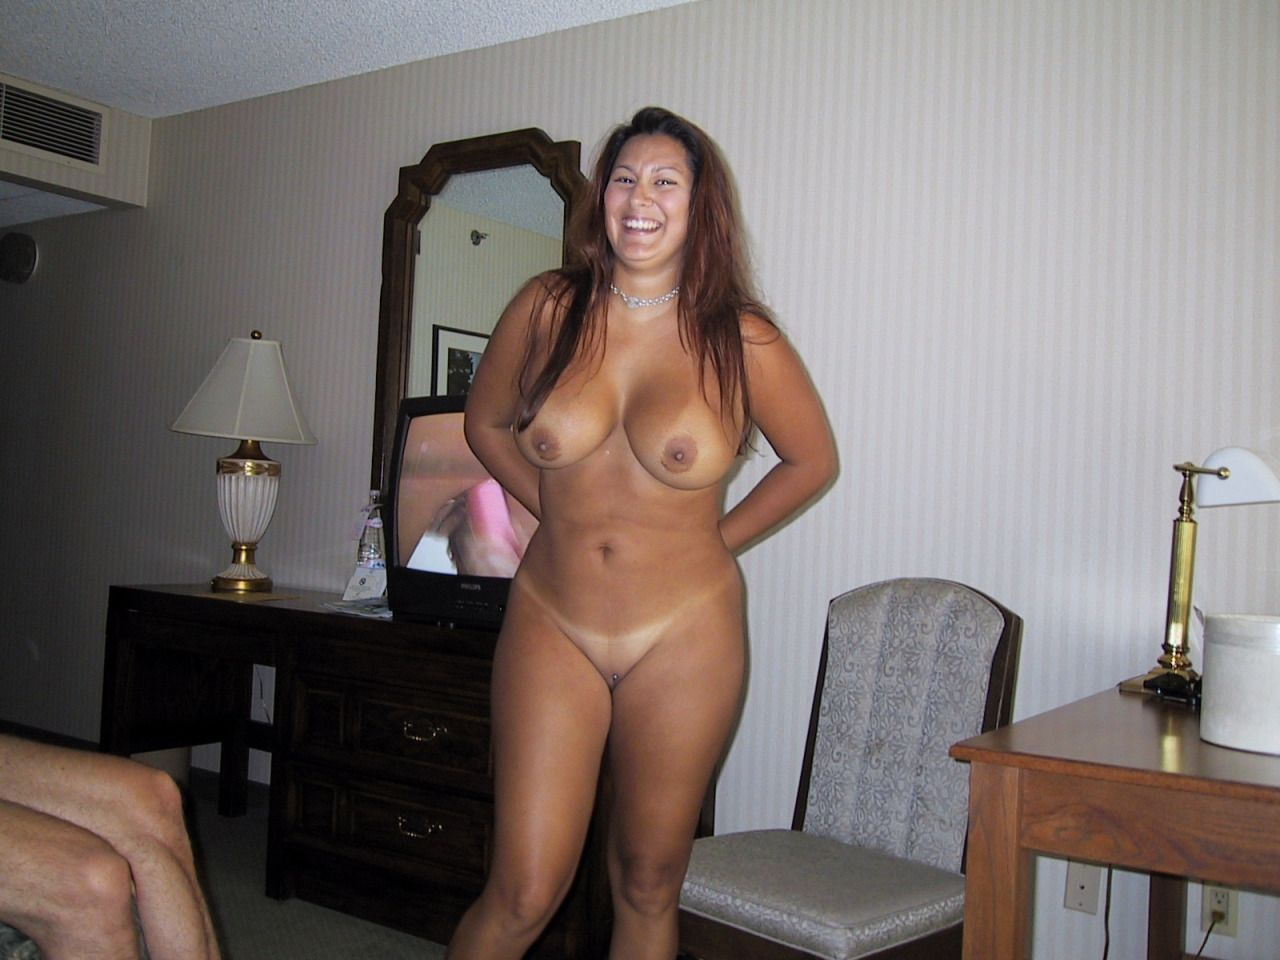 Sexy matire milf latinas it, Sexy